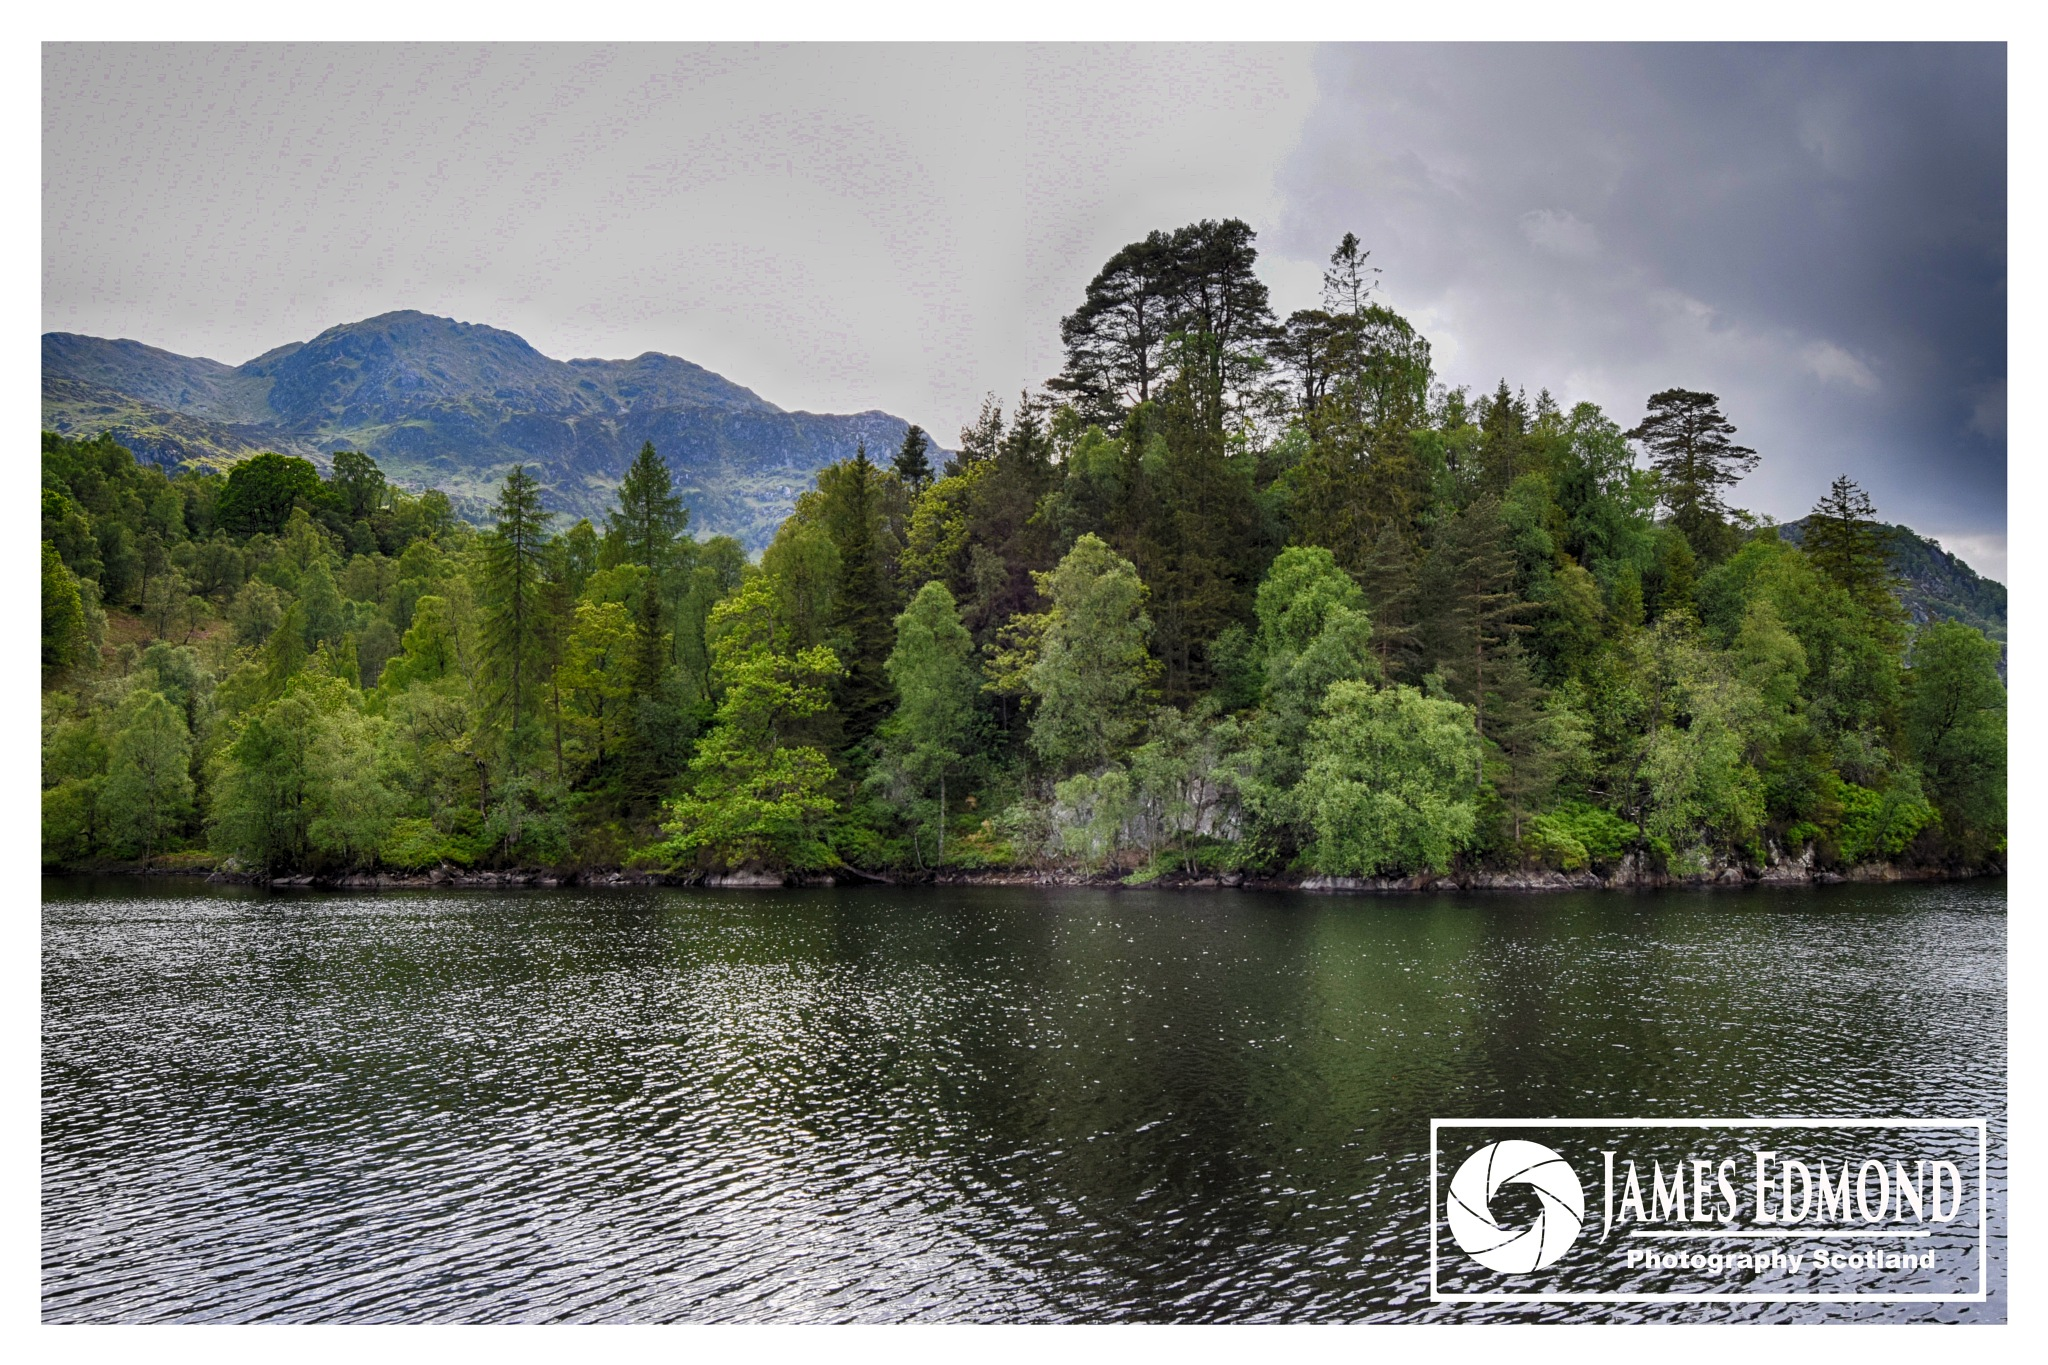 Loch Katrine Scotland UK by James Edmond Photography